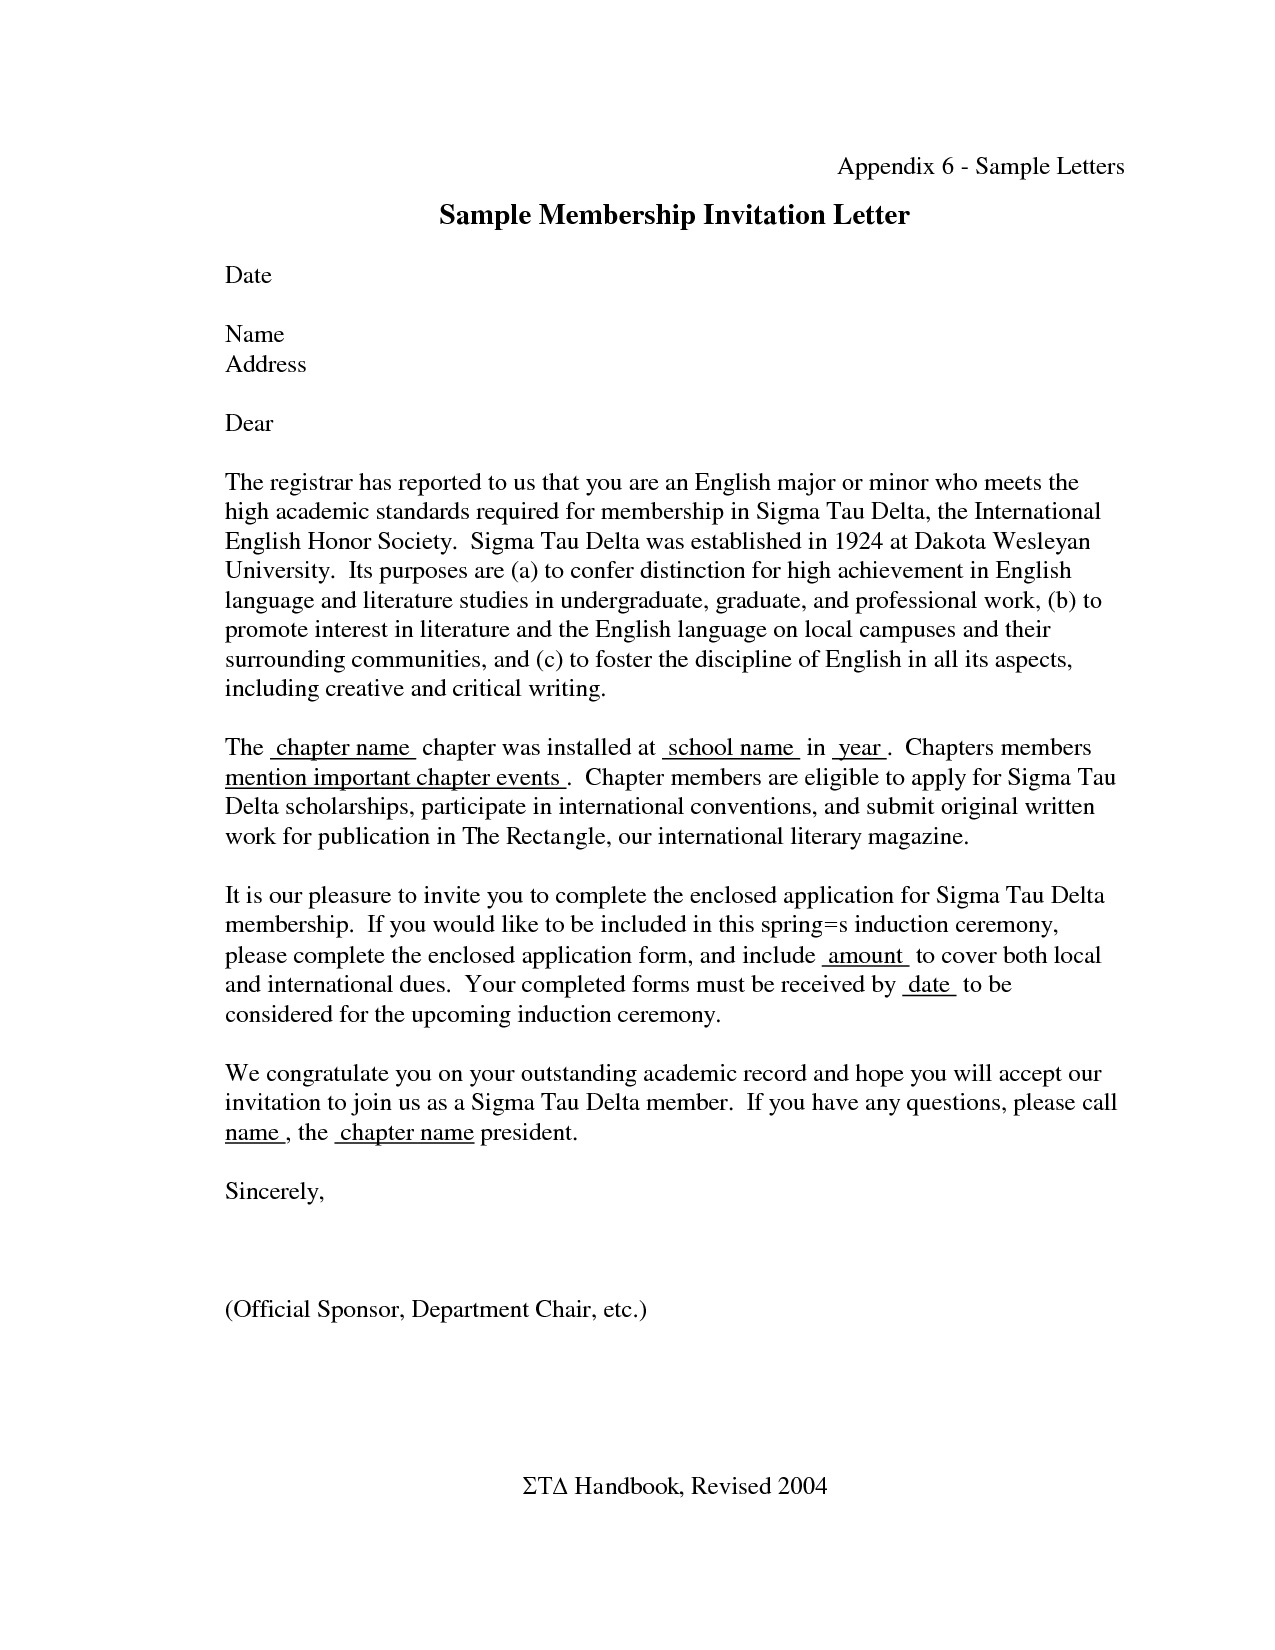 Induction Ceremony Invitation Letter